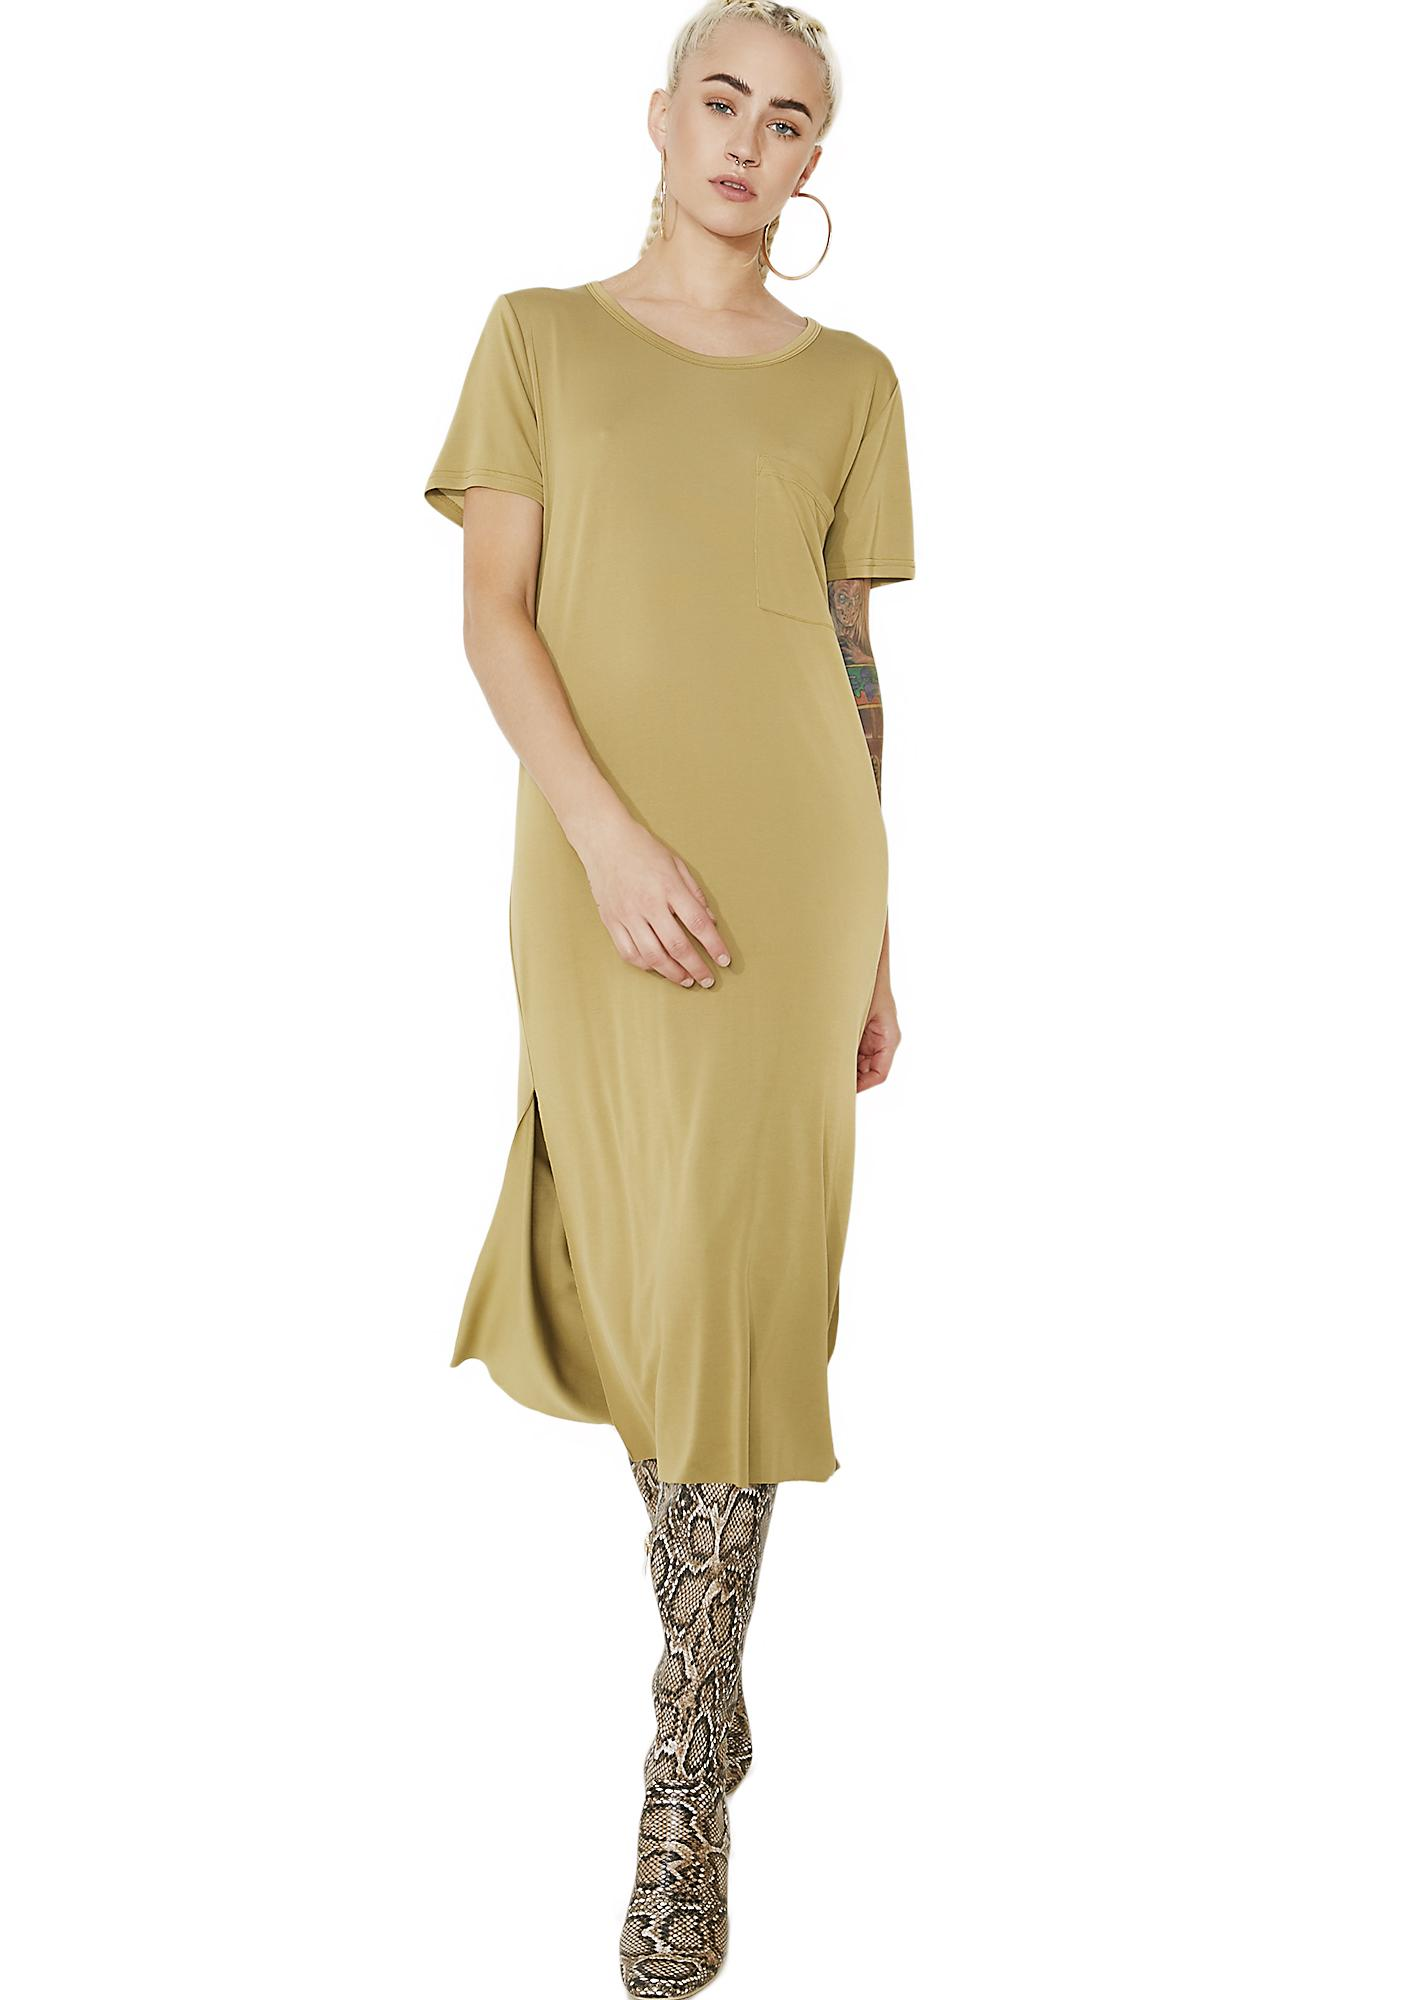 Lira Clothing Eden Dress